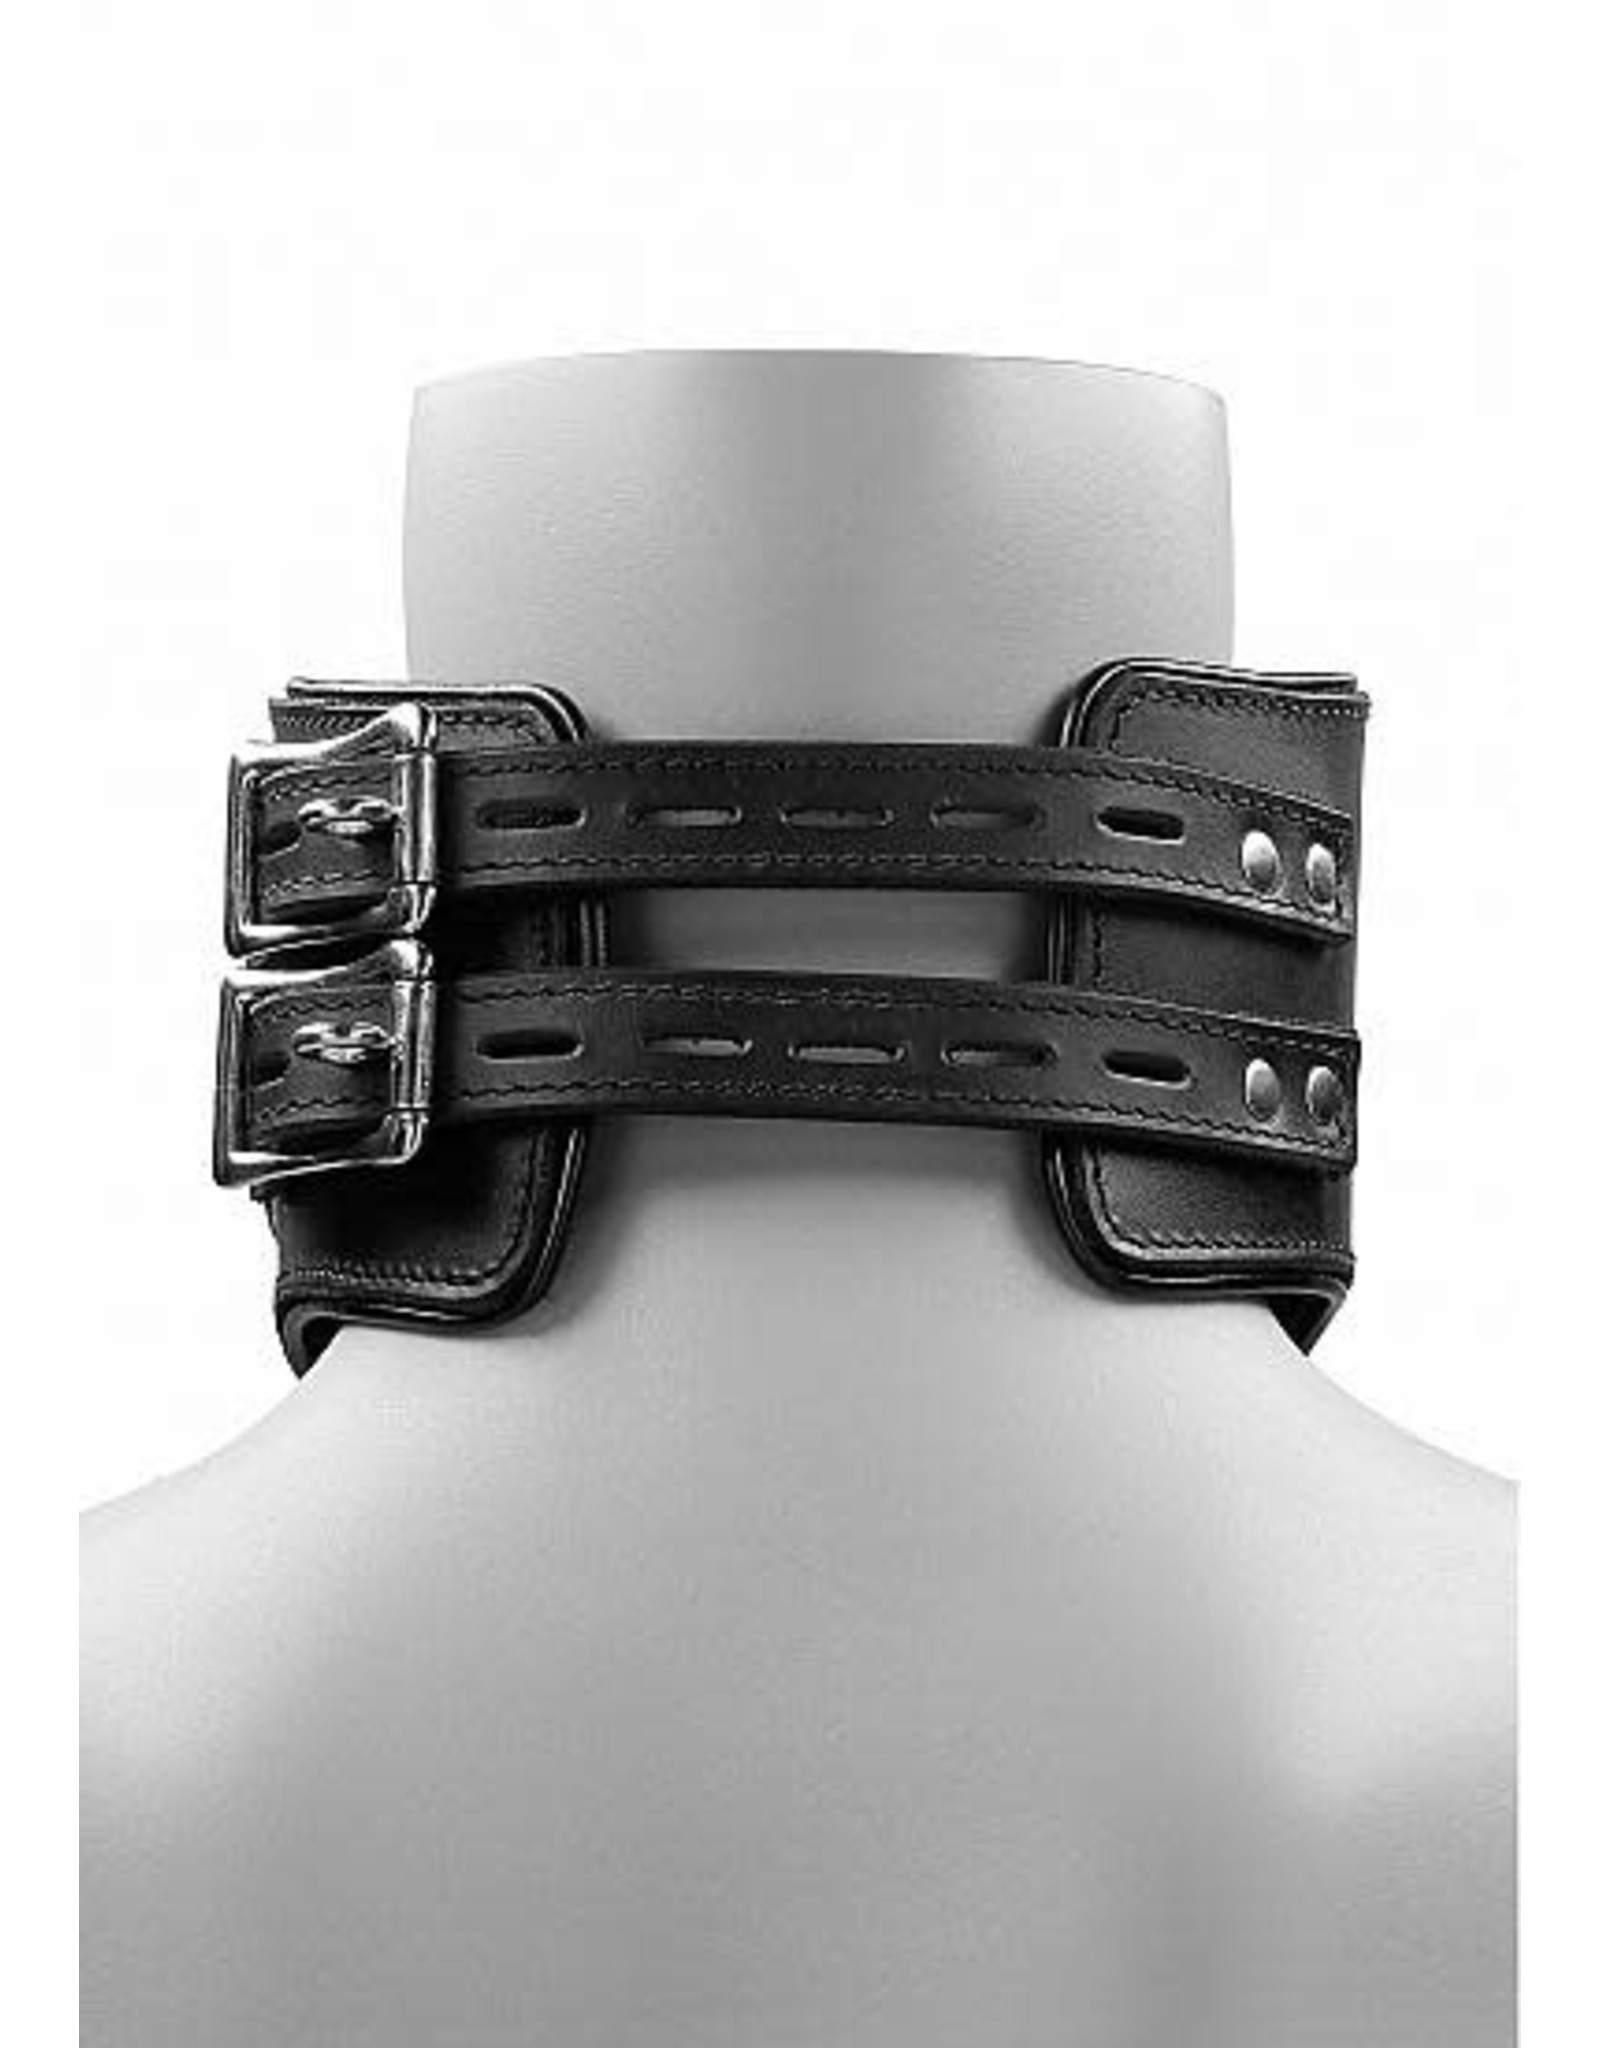 Pain - Heavy Duty Leather Padded Posture Collar